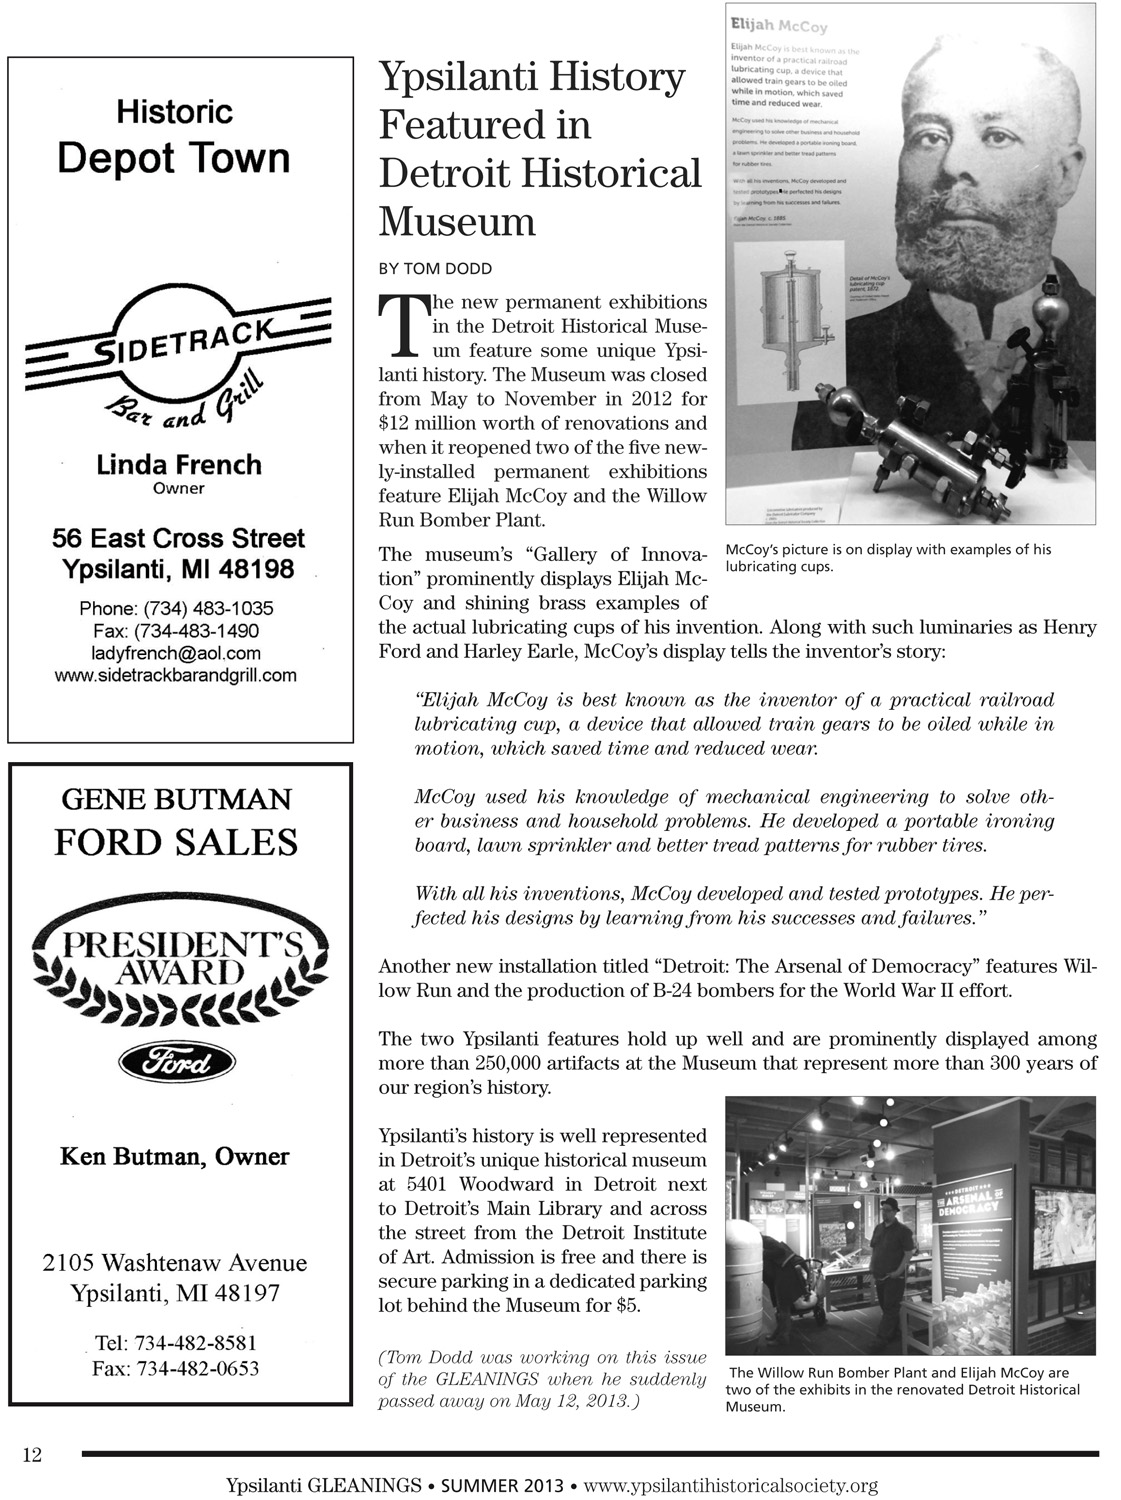 Ypsilanti History Featured in Detroit Historical Museum image